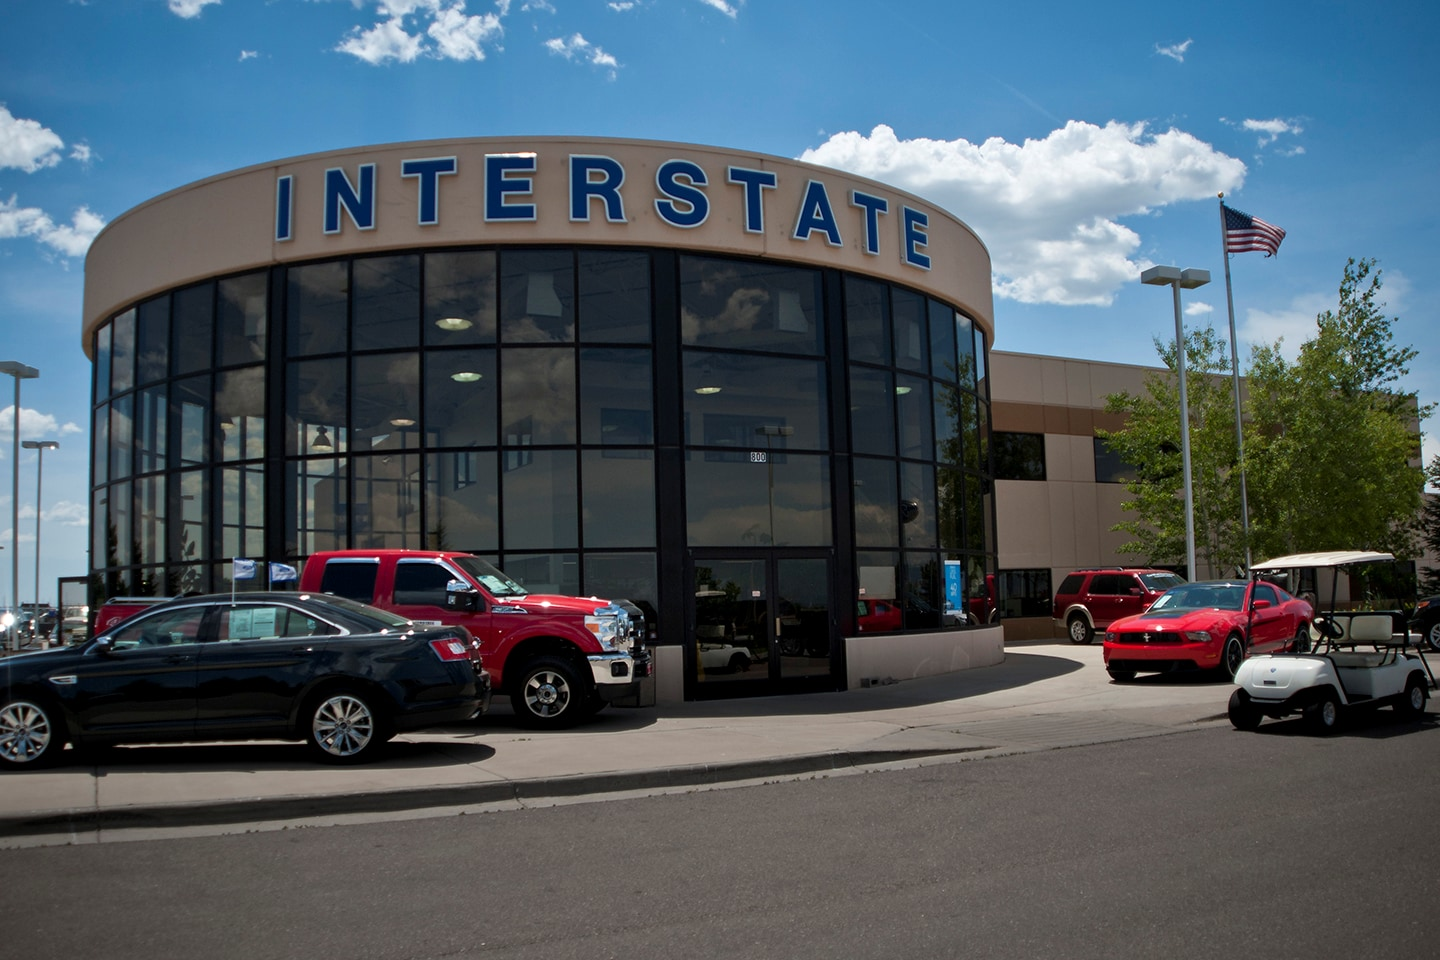 About Interstate Ford Denver and Boulder Region Ford Dealers